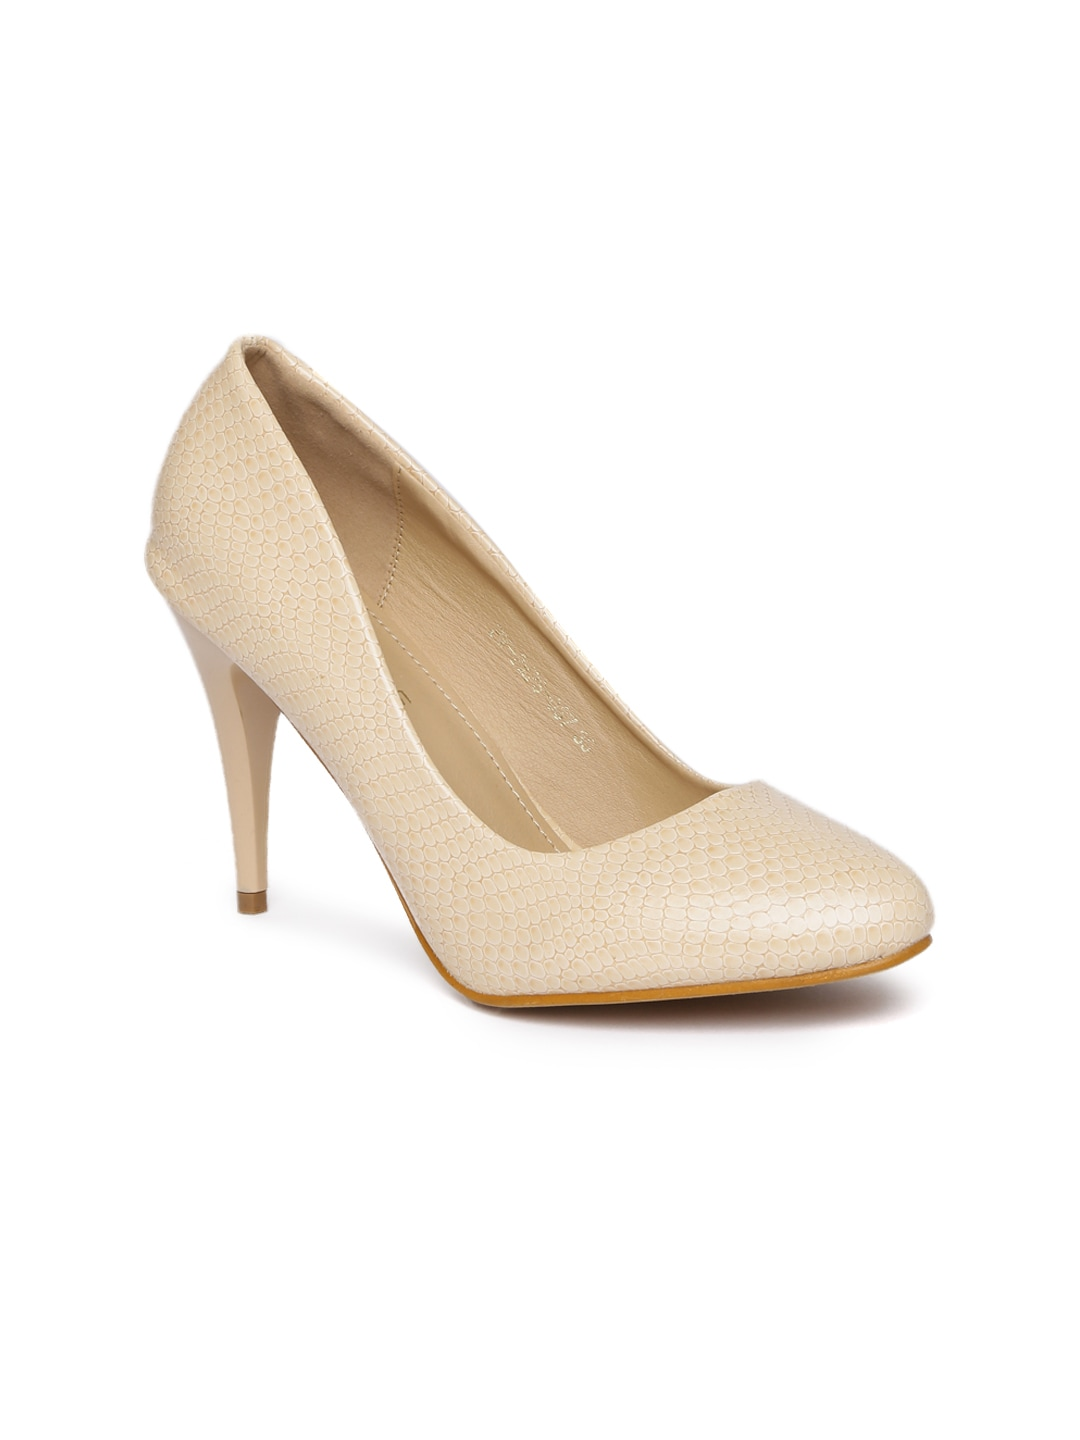 f4a9faae8ac5 Addons Women Cream-Coloured Solid Pumps